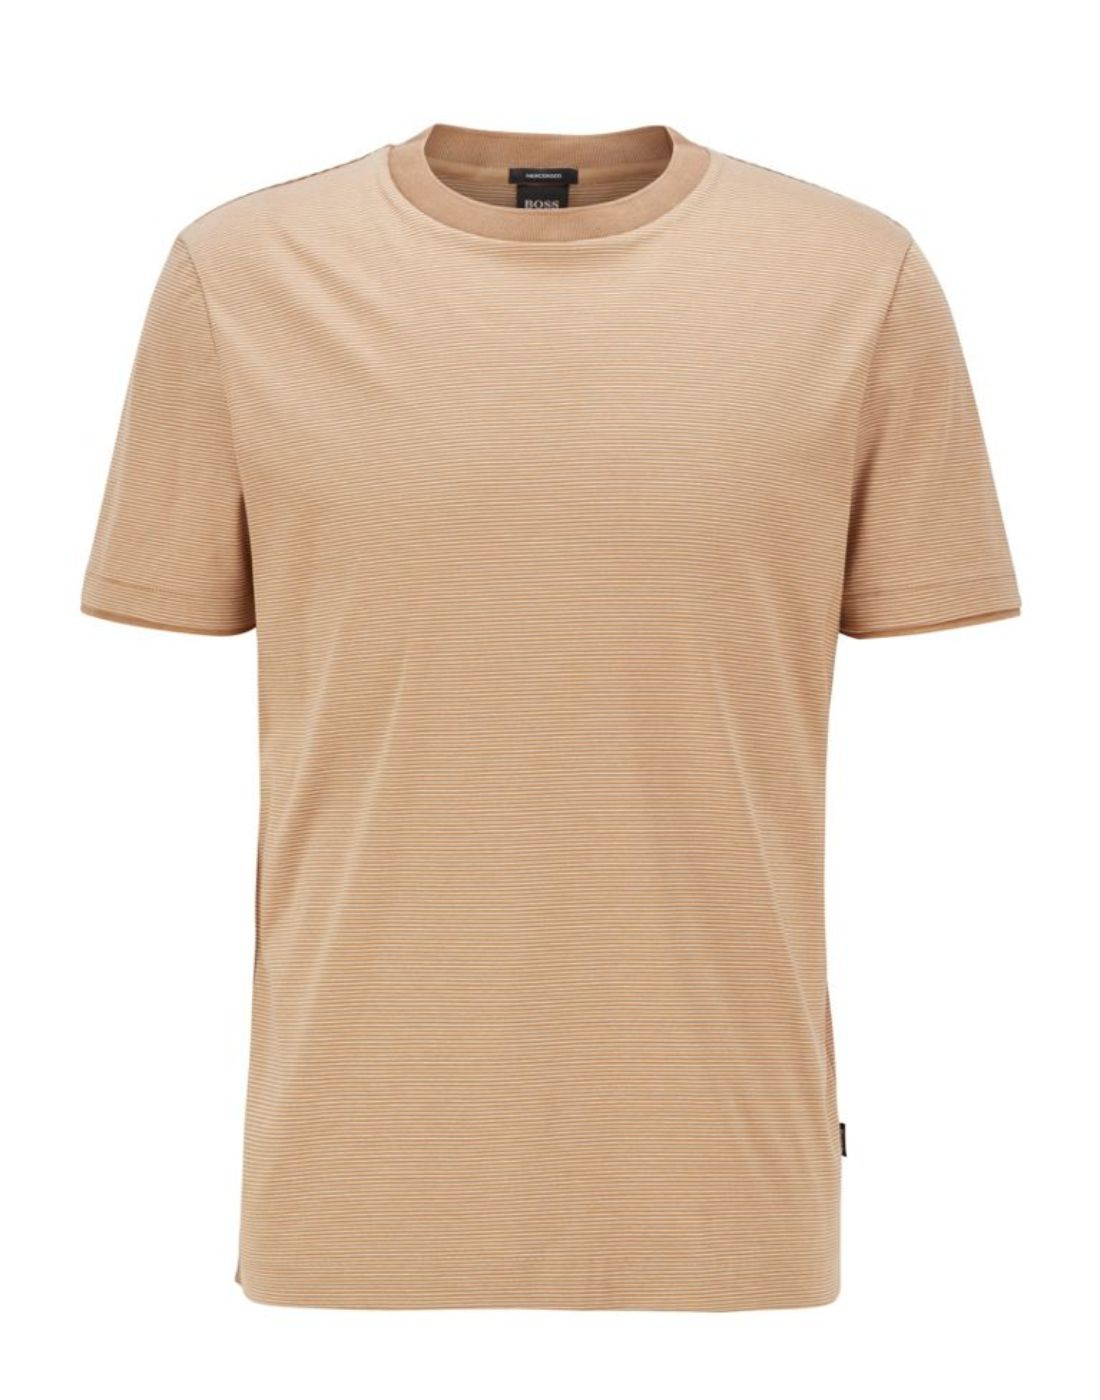 hugo boss beige t shirt 2021